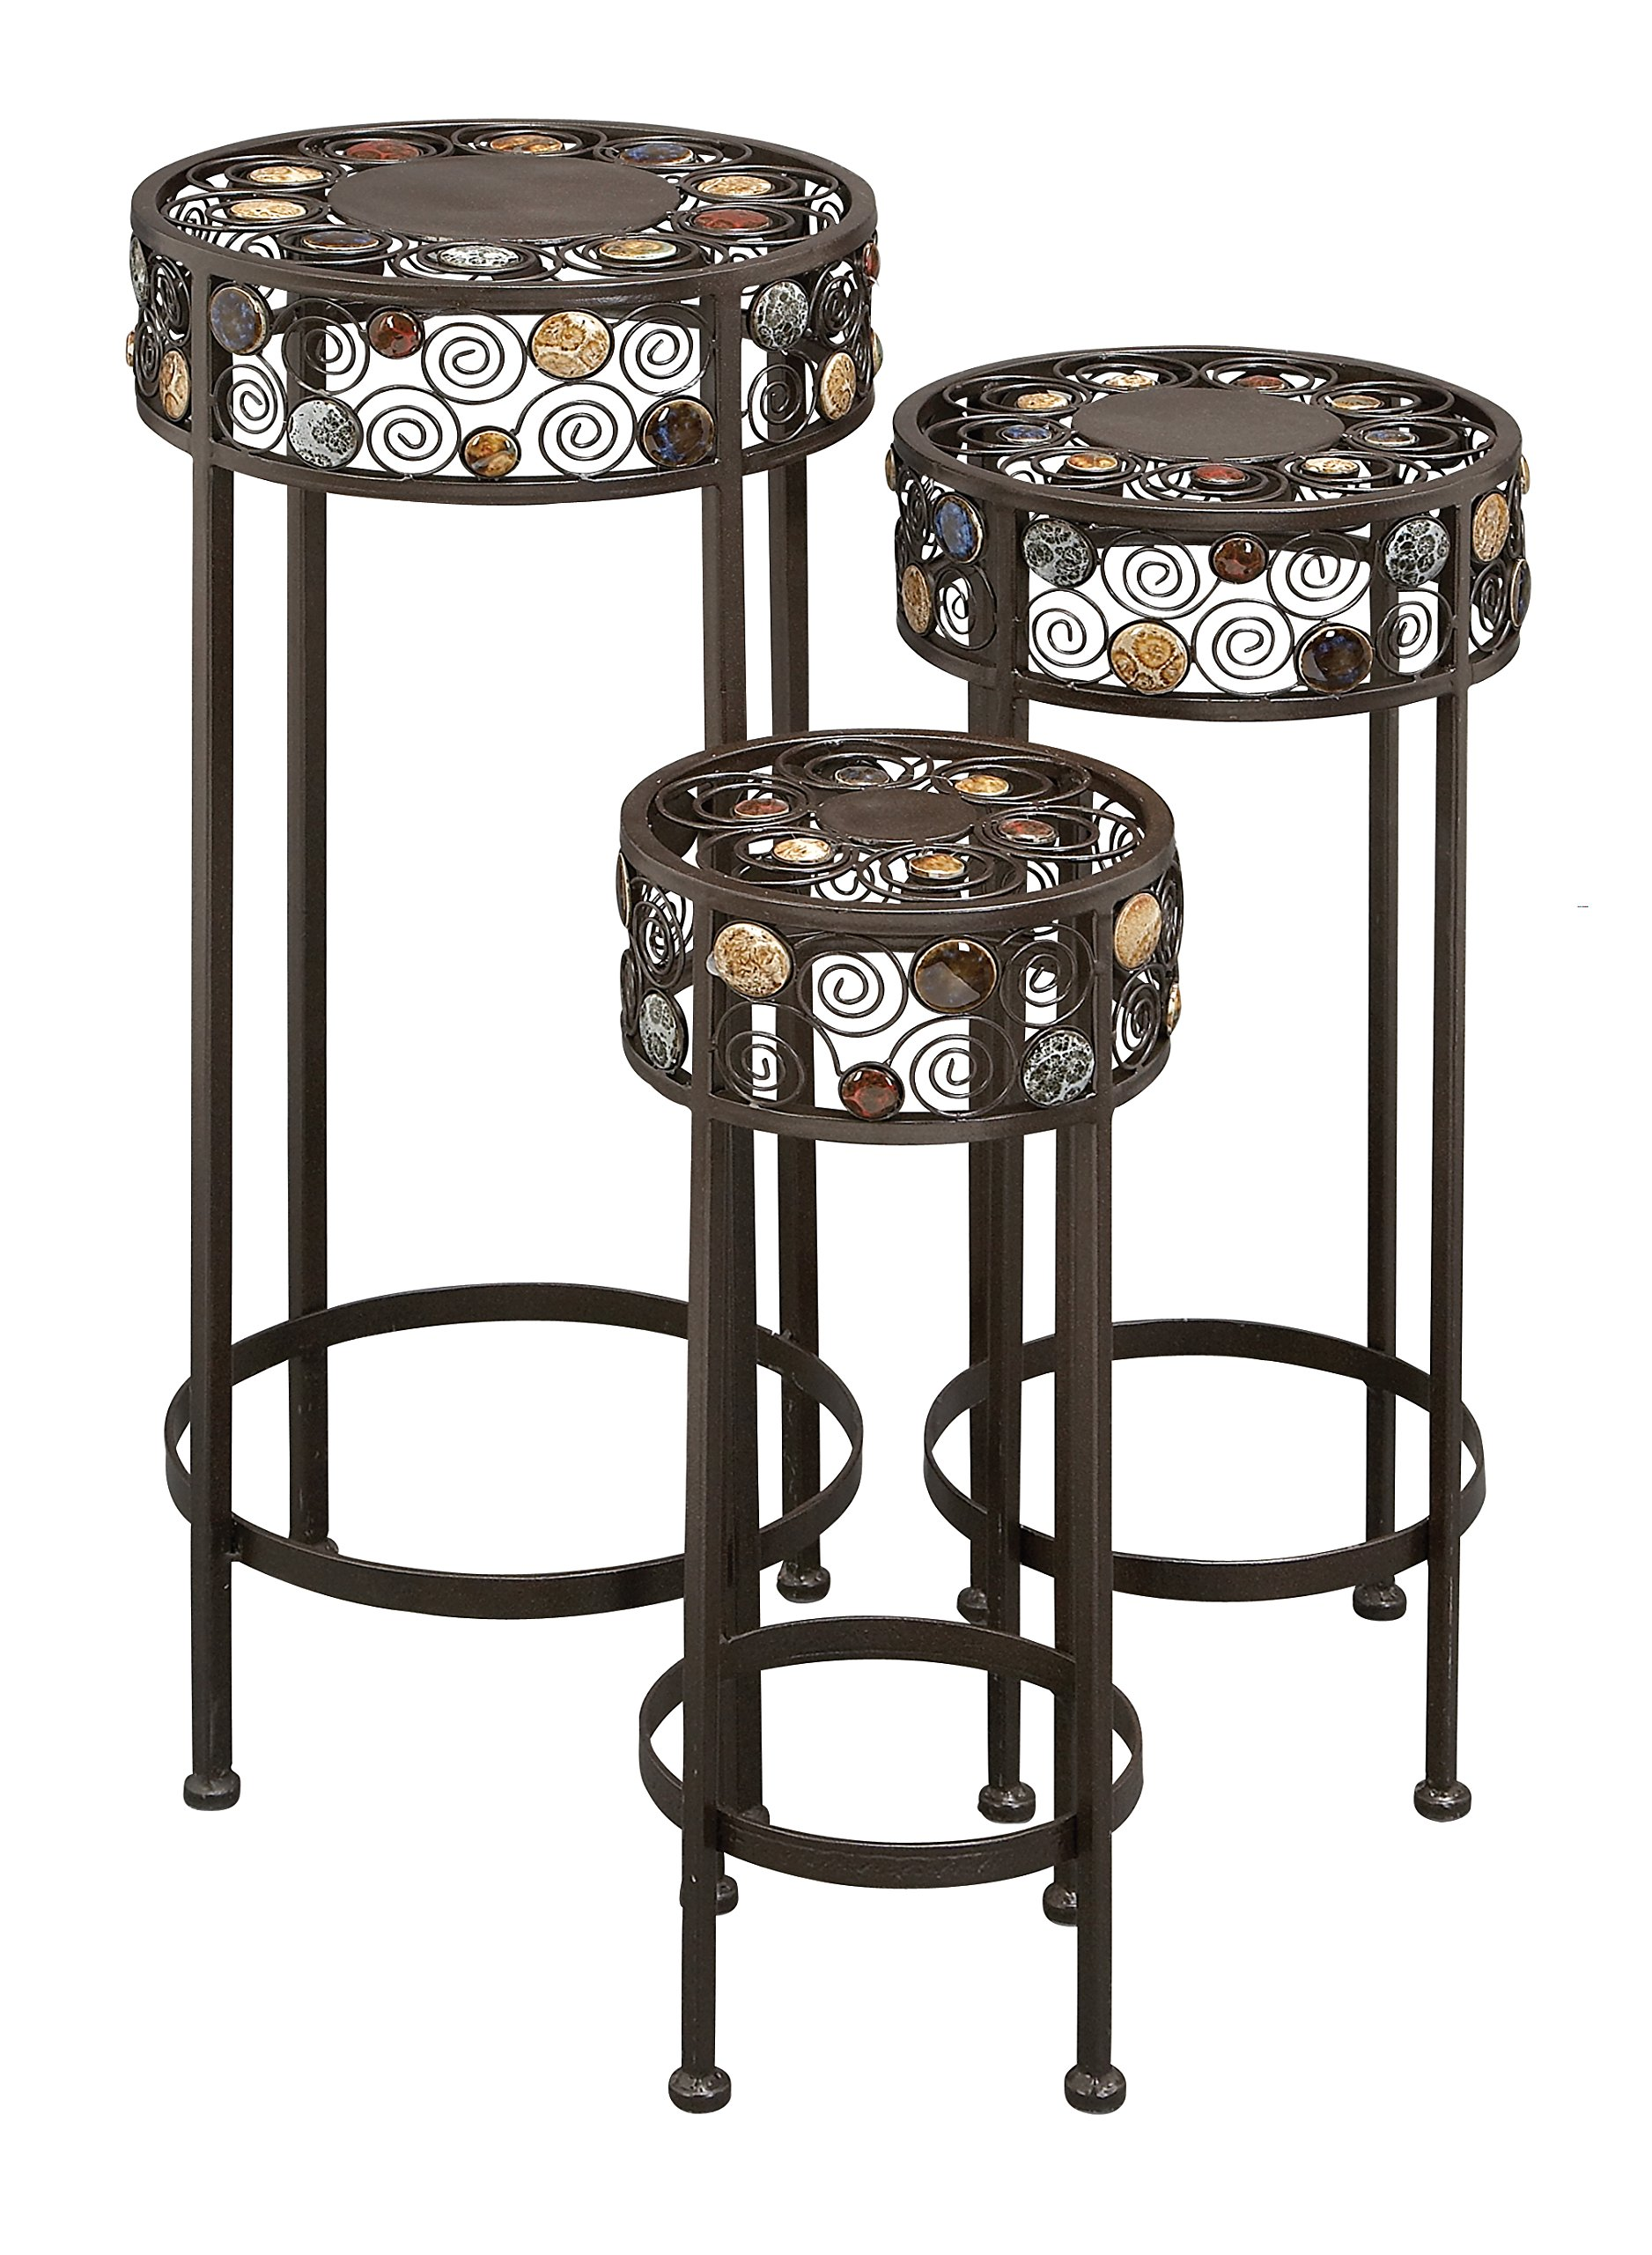 Deco 79 Metal/Ceramic Plant Stand 28-Inch, 24-Inch, 20-Inch, Set of 3